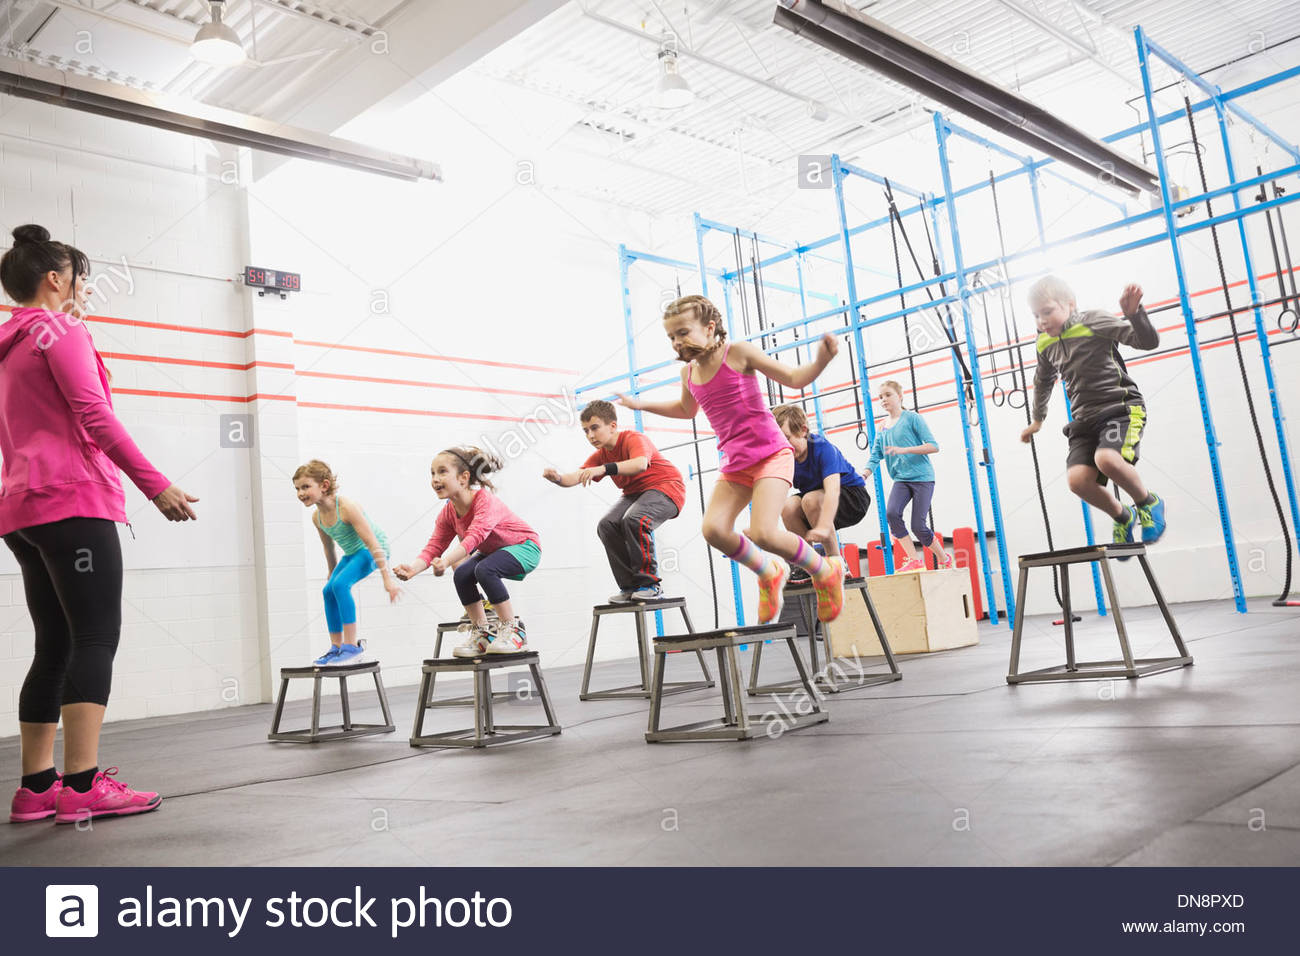 Children doing box jumps at gym - Stock Image